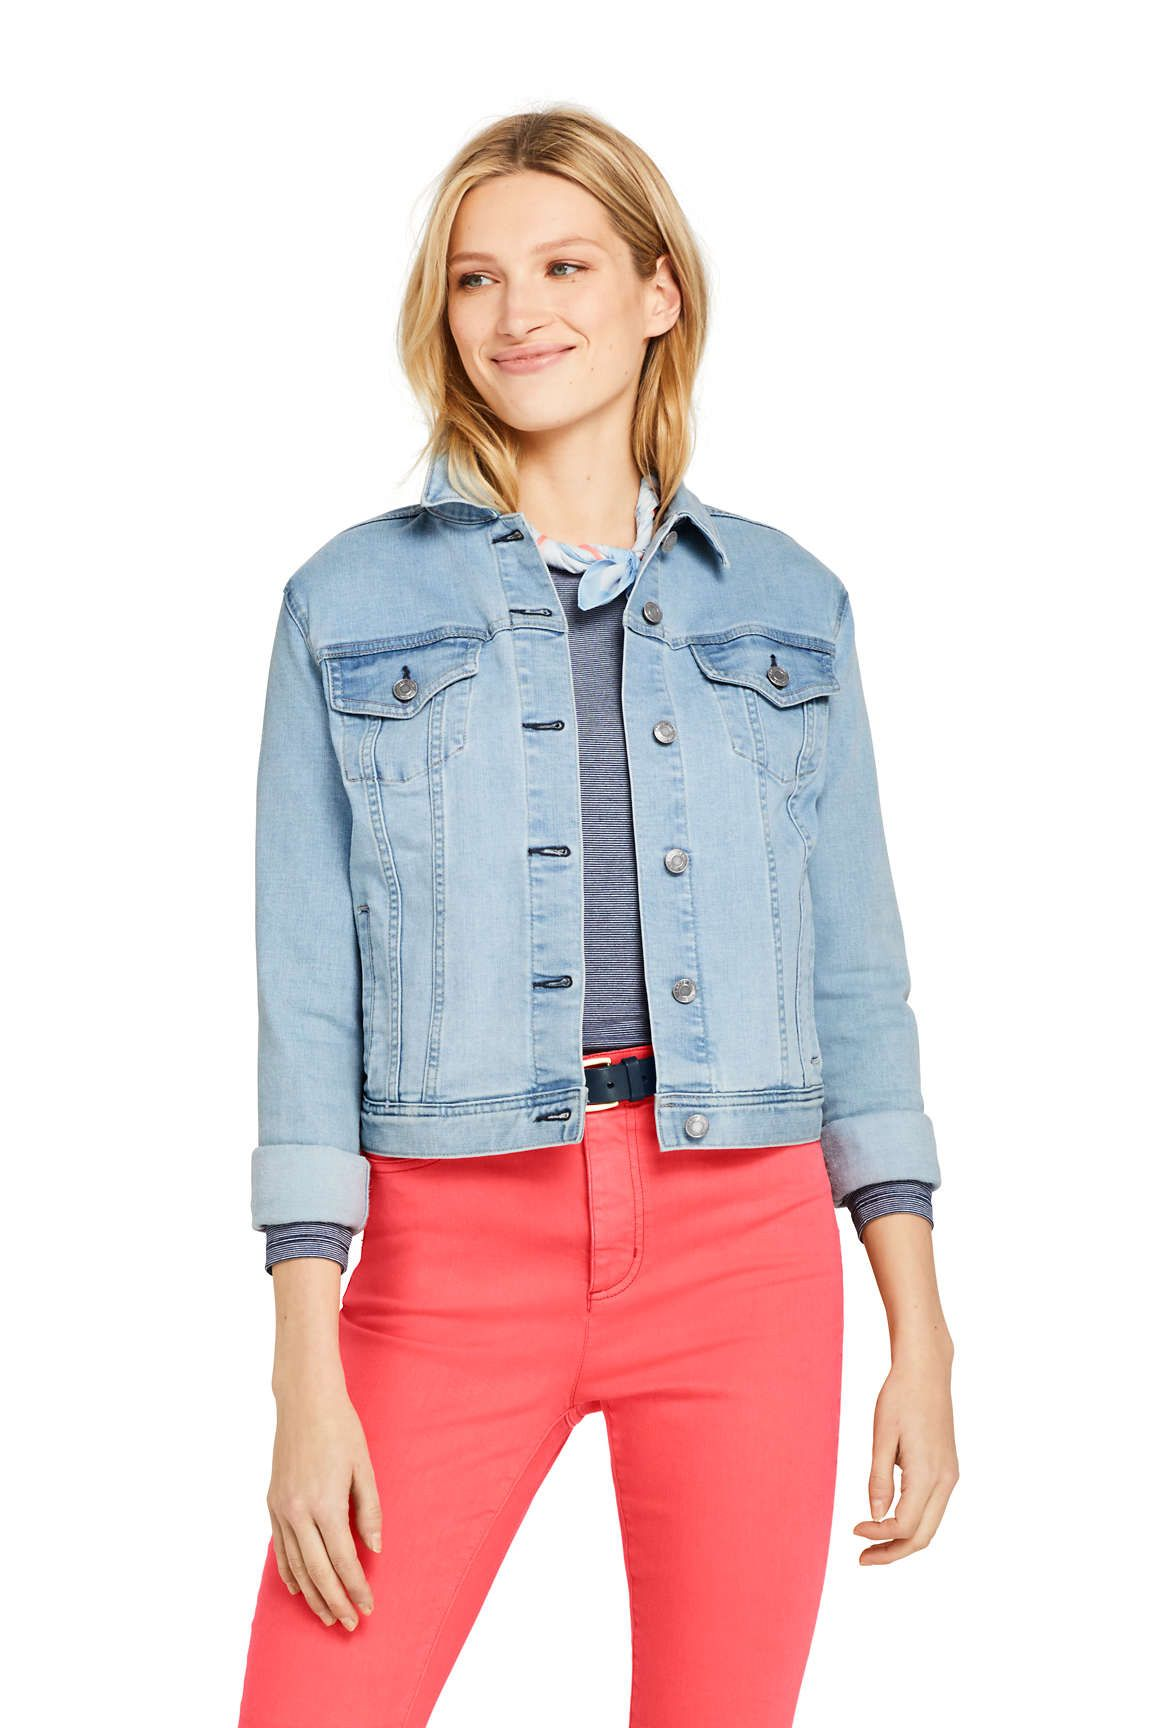 3cae6cfd186 Women's Long Sleeve Denim Jacket from Lands' End | Lands End. in ...